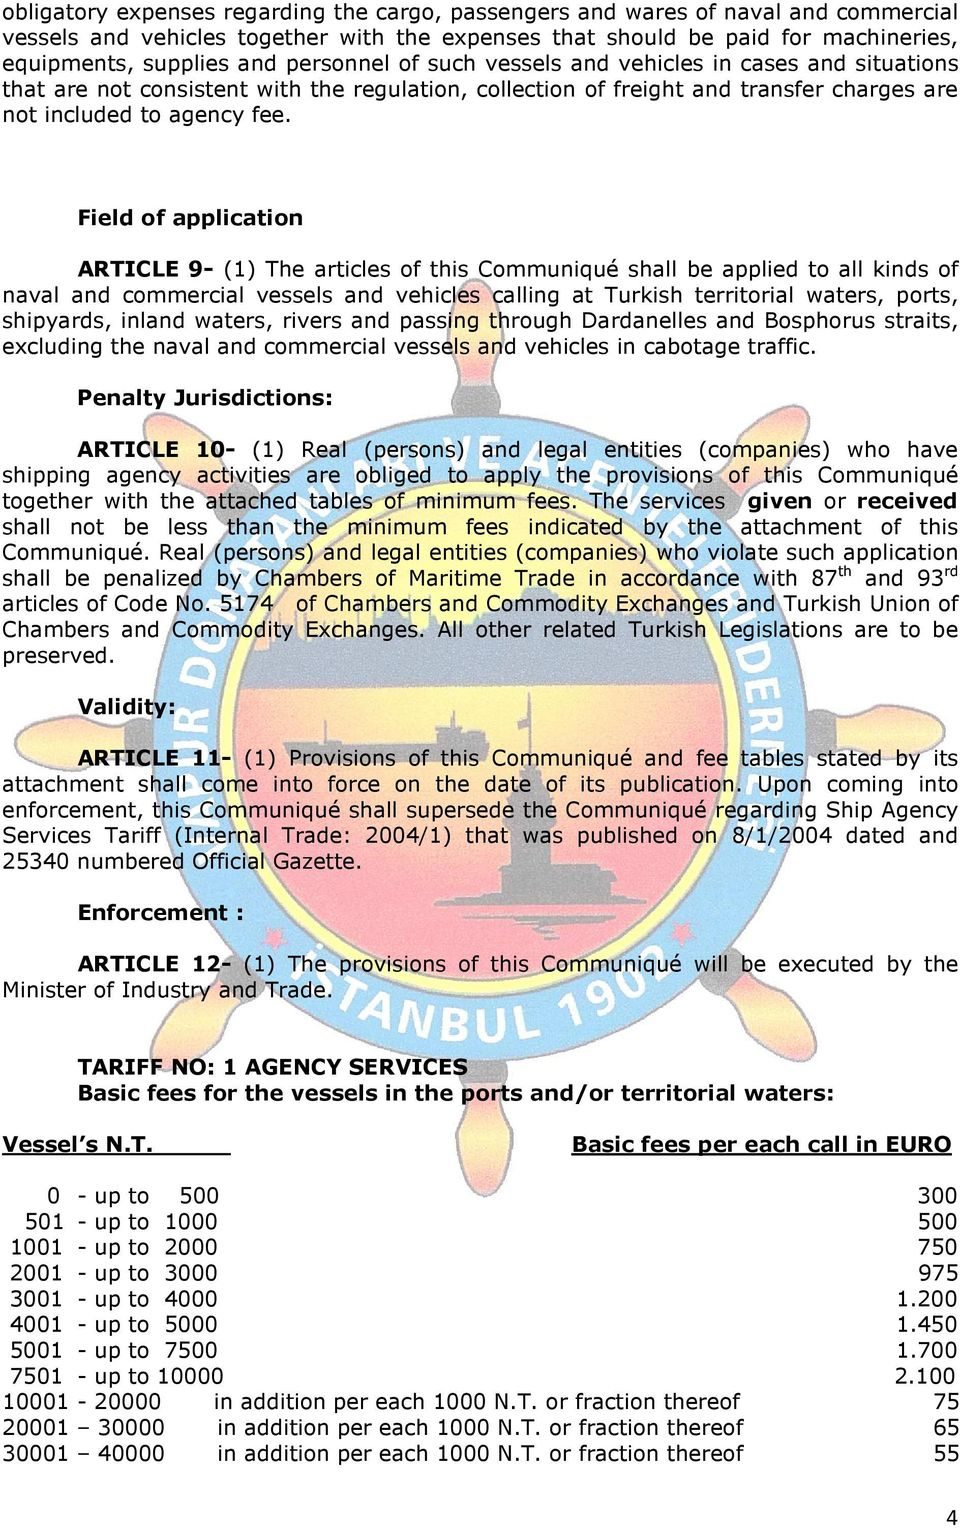 Field of application ARTICLE 9- (1) The articles of this Communiqué shall be applied to all kinds of naval and commercial vessels and vehicles calling at Turkish territorial waters, ports, shipyards,